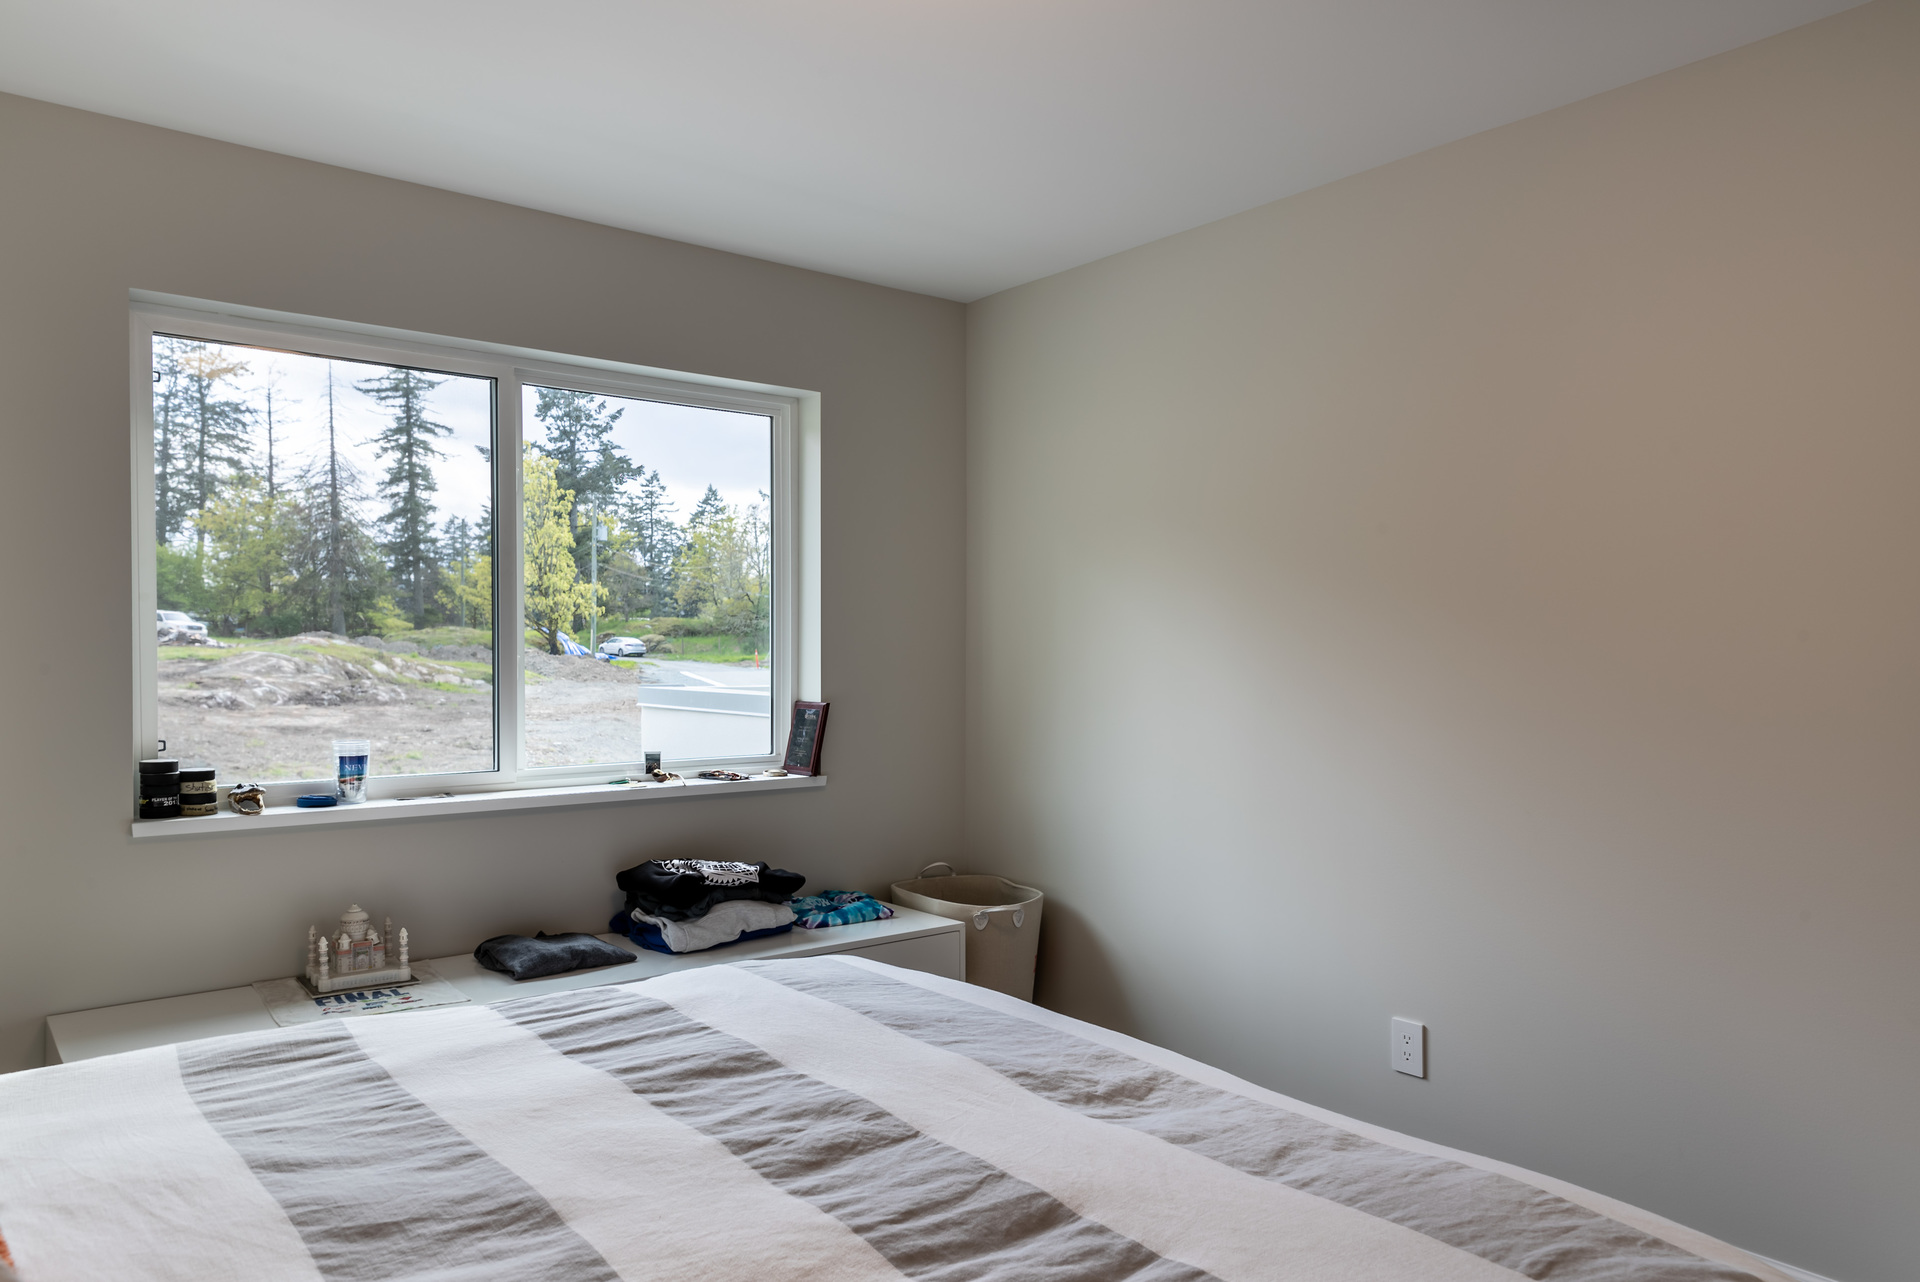 Suite Bedroom at 5101 Jagtar's Way, Victoria, Vancouver Island,